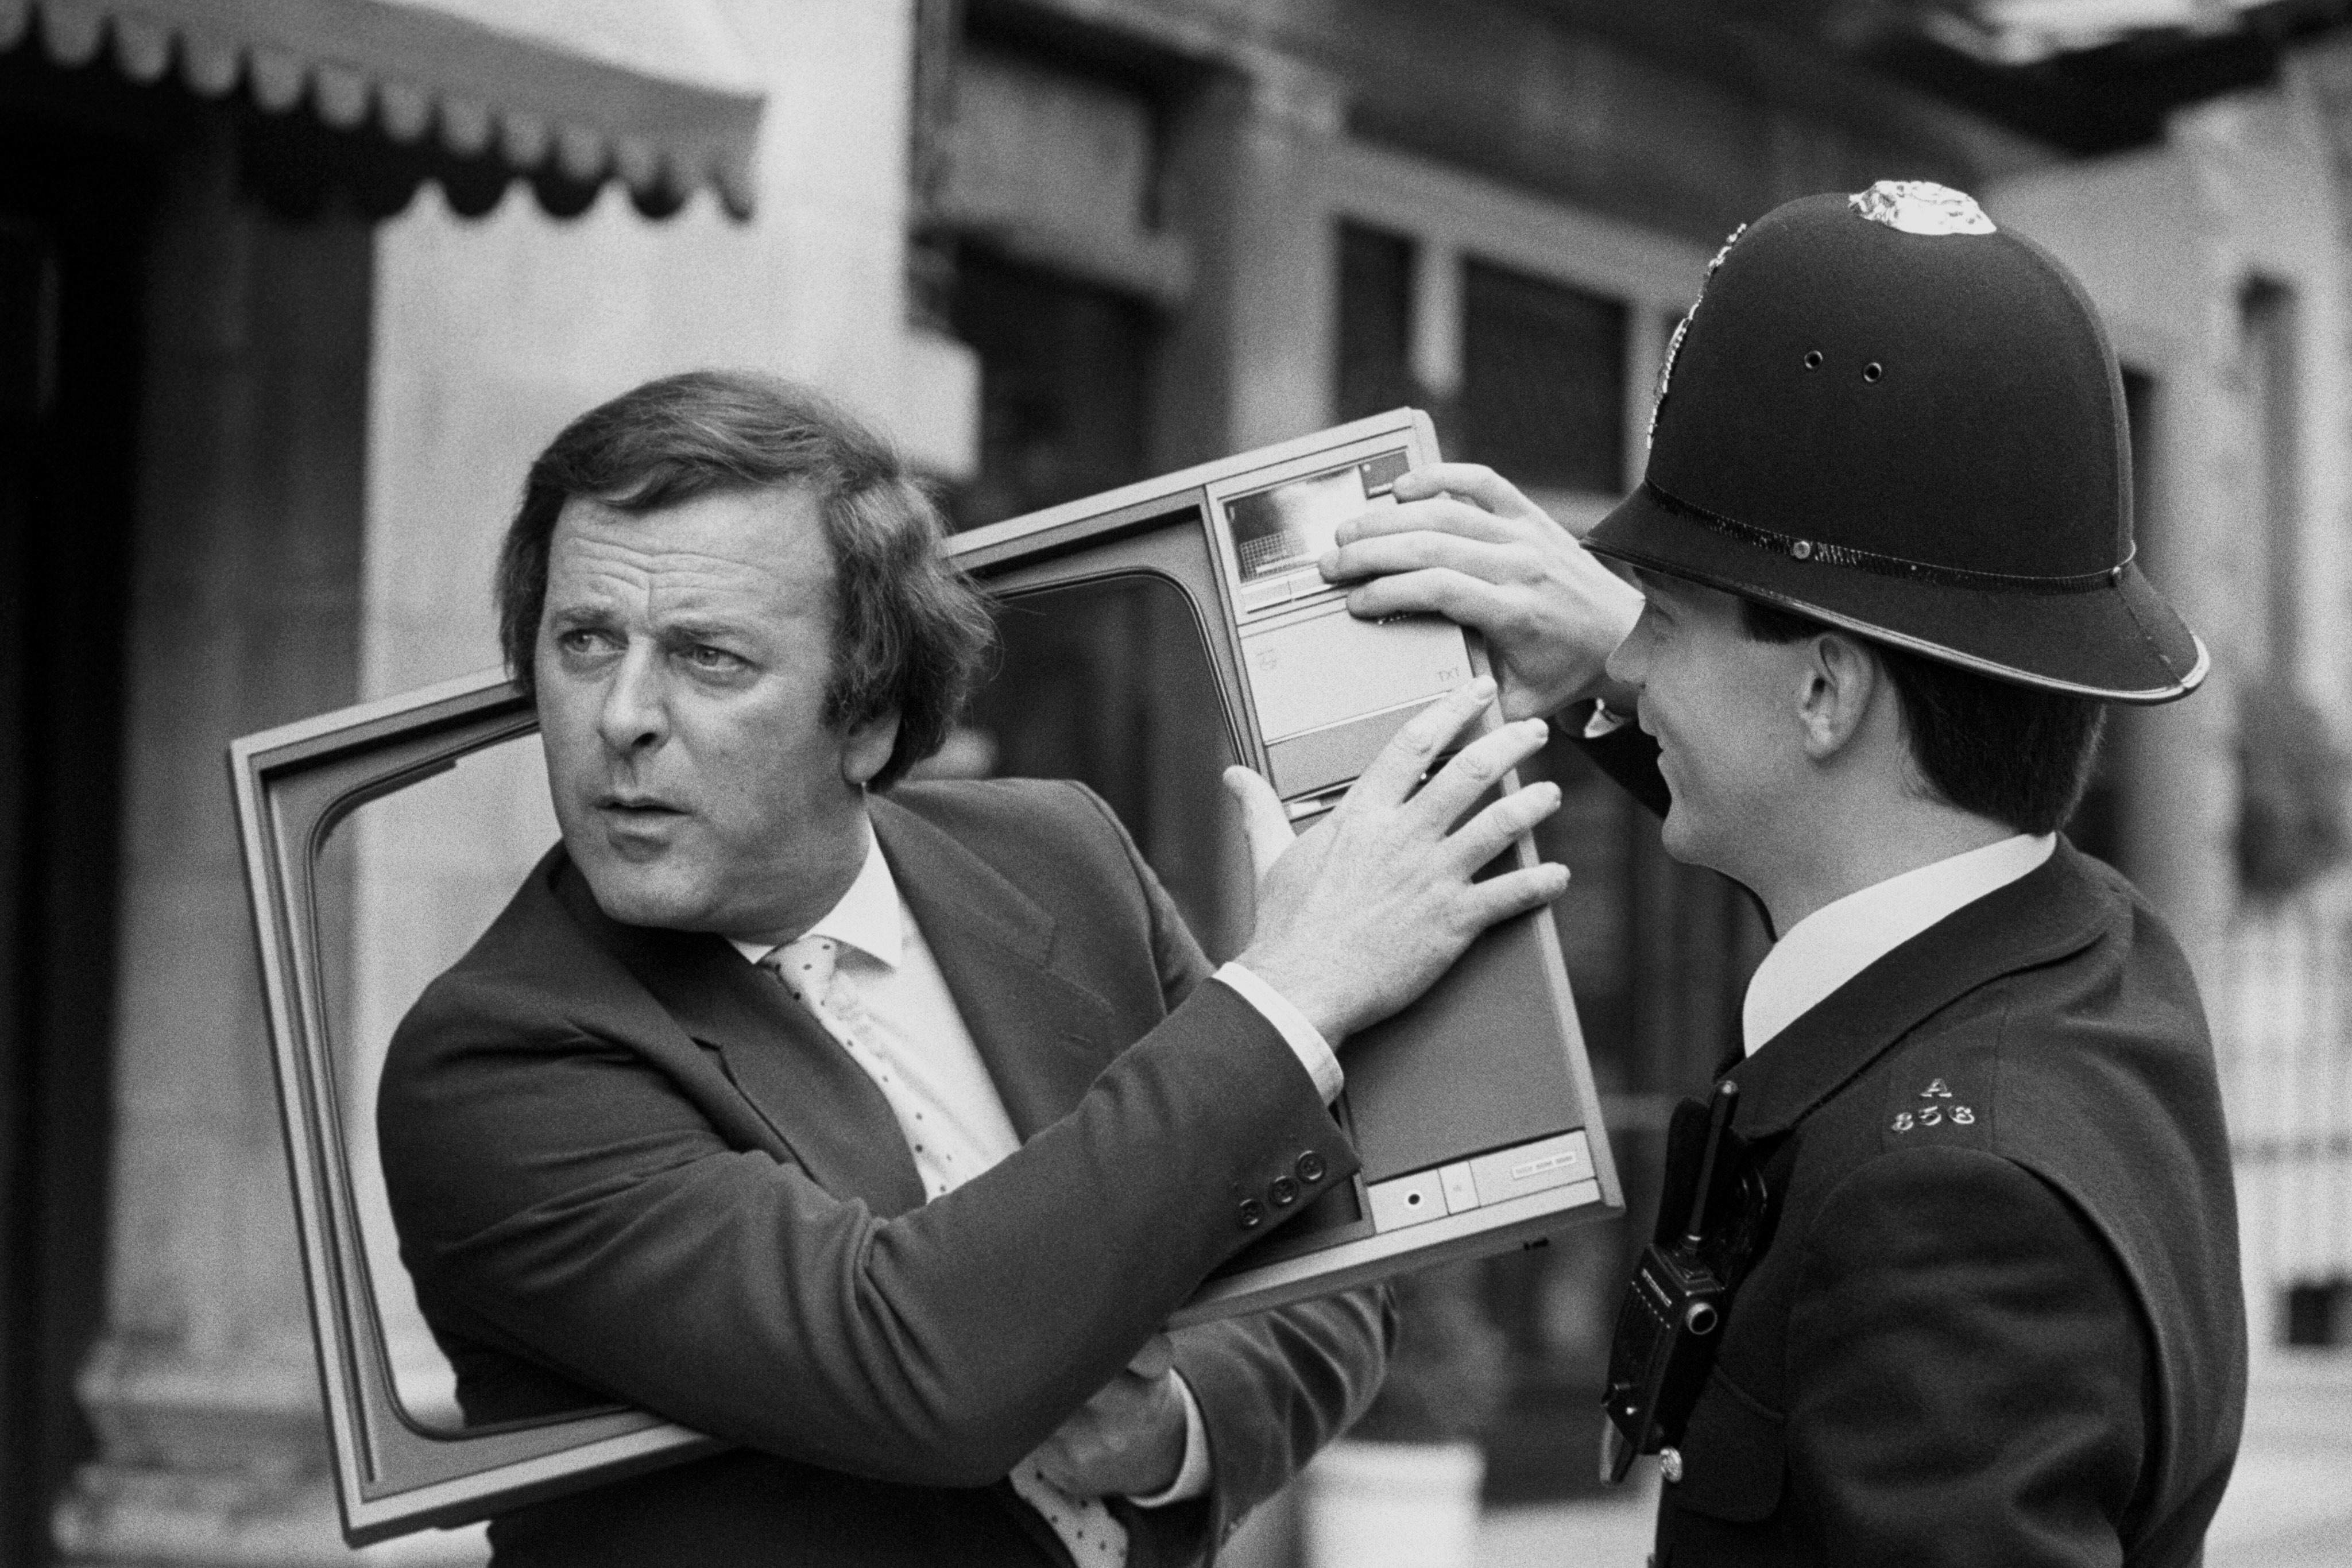 Broadcasting Legend Sir Terry Wogan Dies Aged 77 After Short Illness PA 5268293